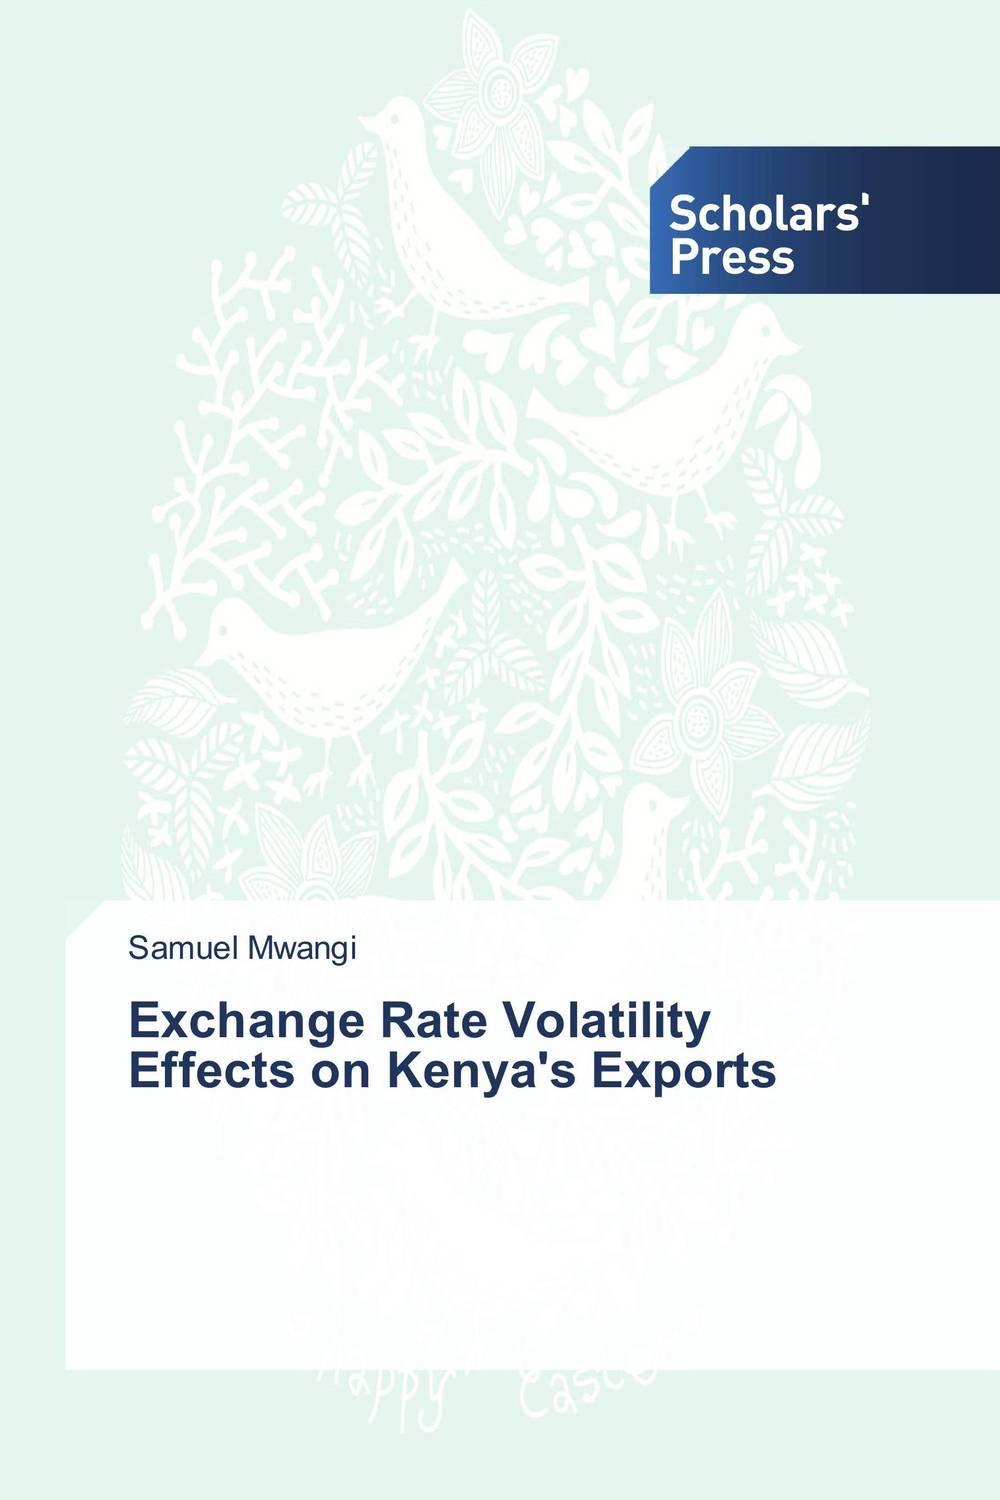 Exchange Rate Volatility Effects on Kenya's Exports nkobe kenyoru dividend policy and share price volatility